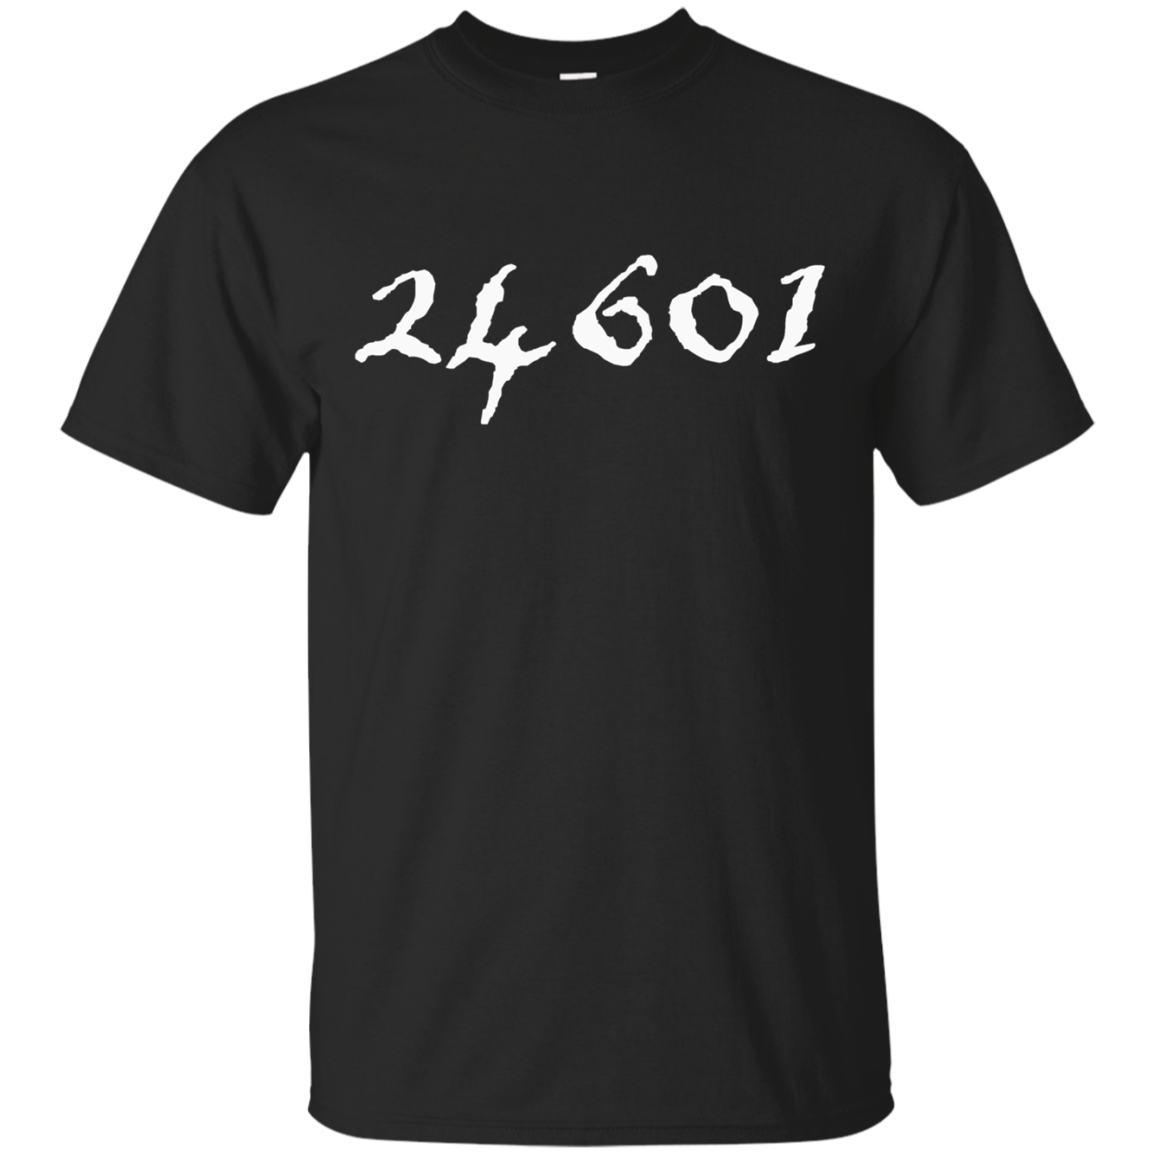 Prisoner 24601 T shirt - Actor Stage Manager Theatre Gifts